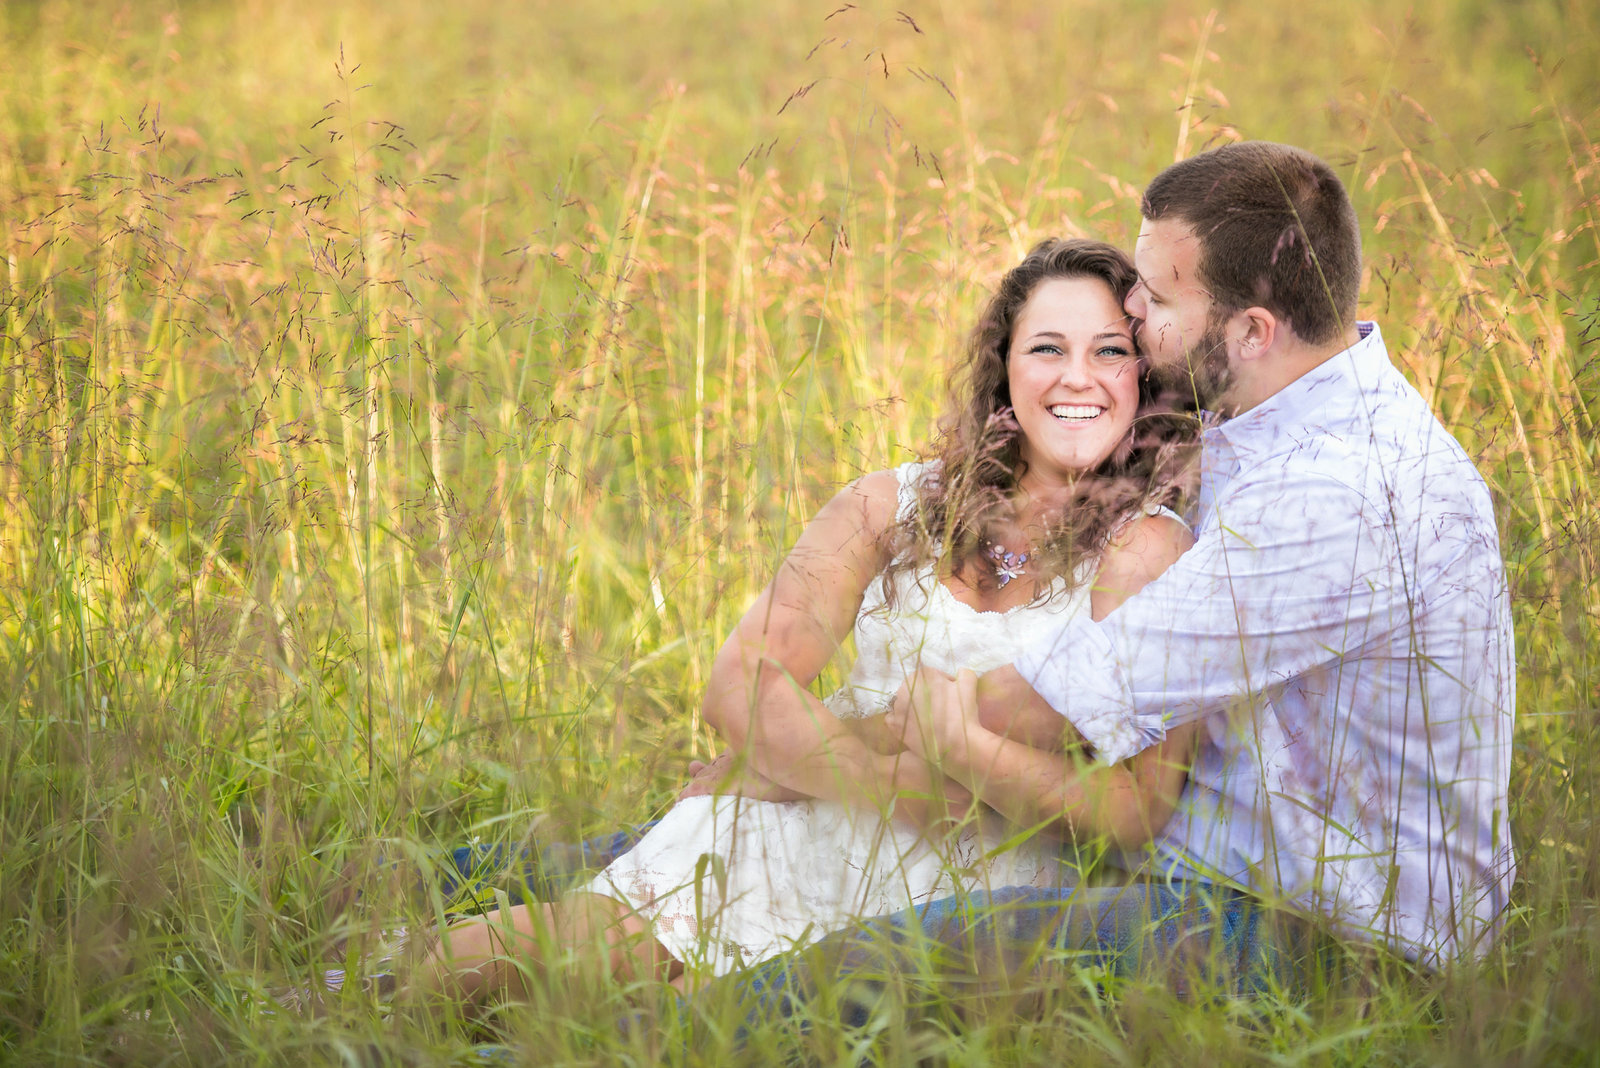 NJ_Rustic_Engagement_Photography019